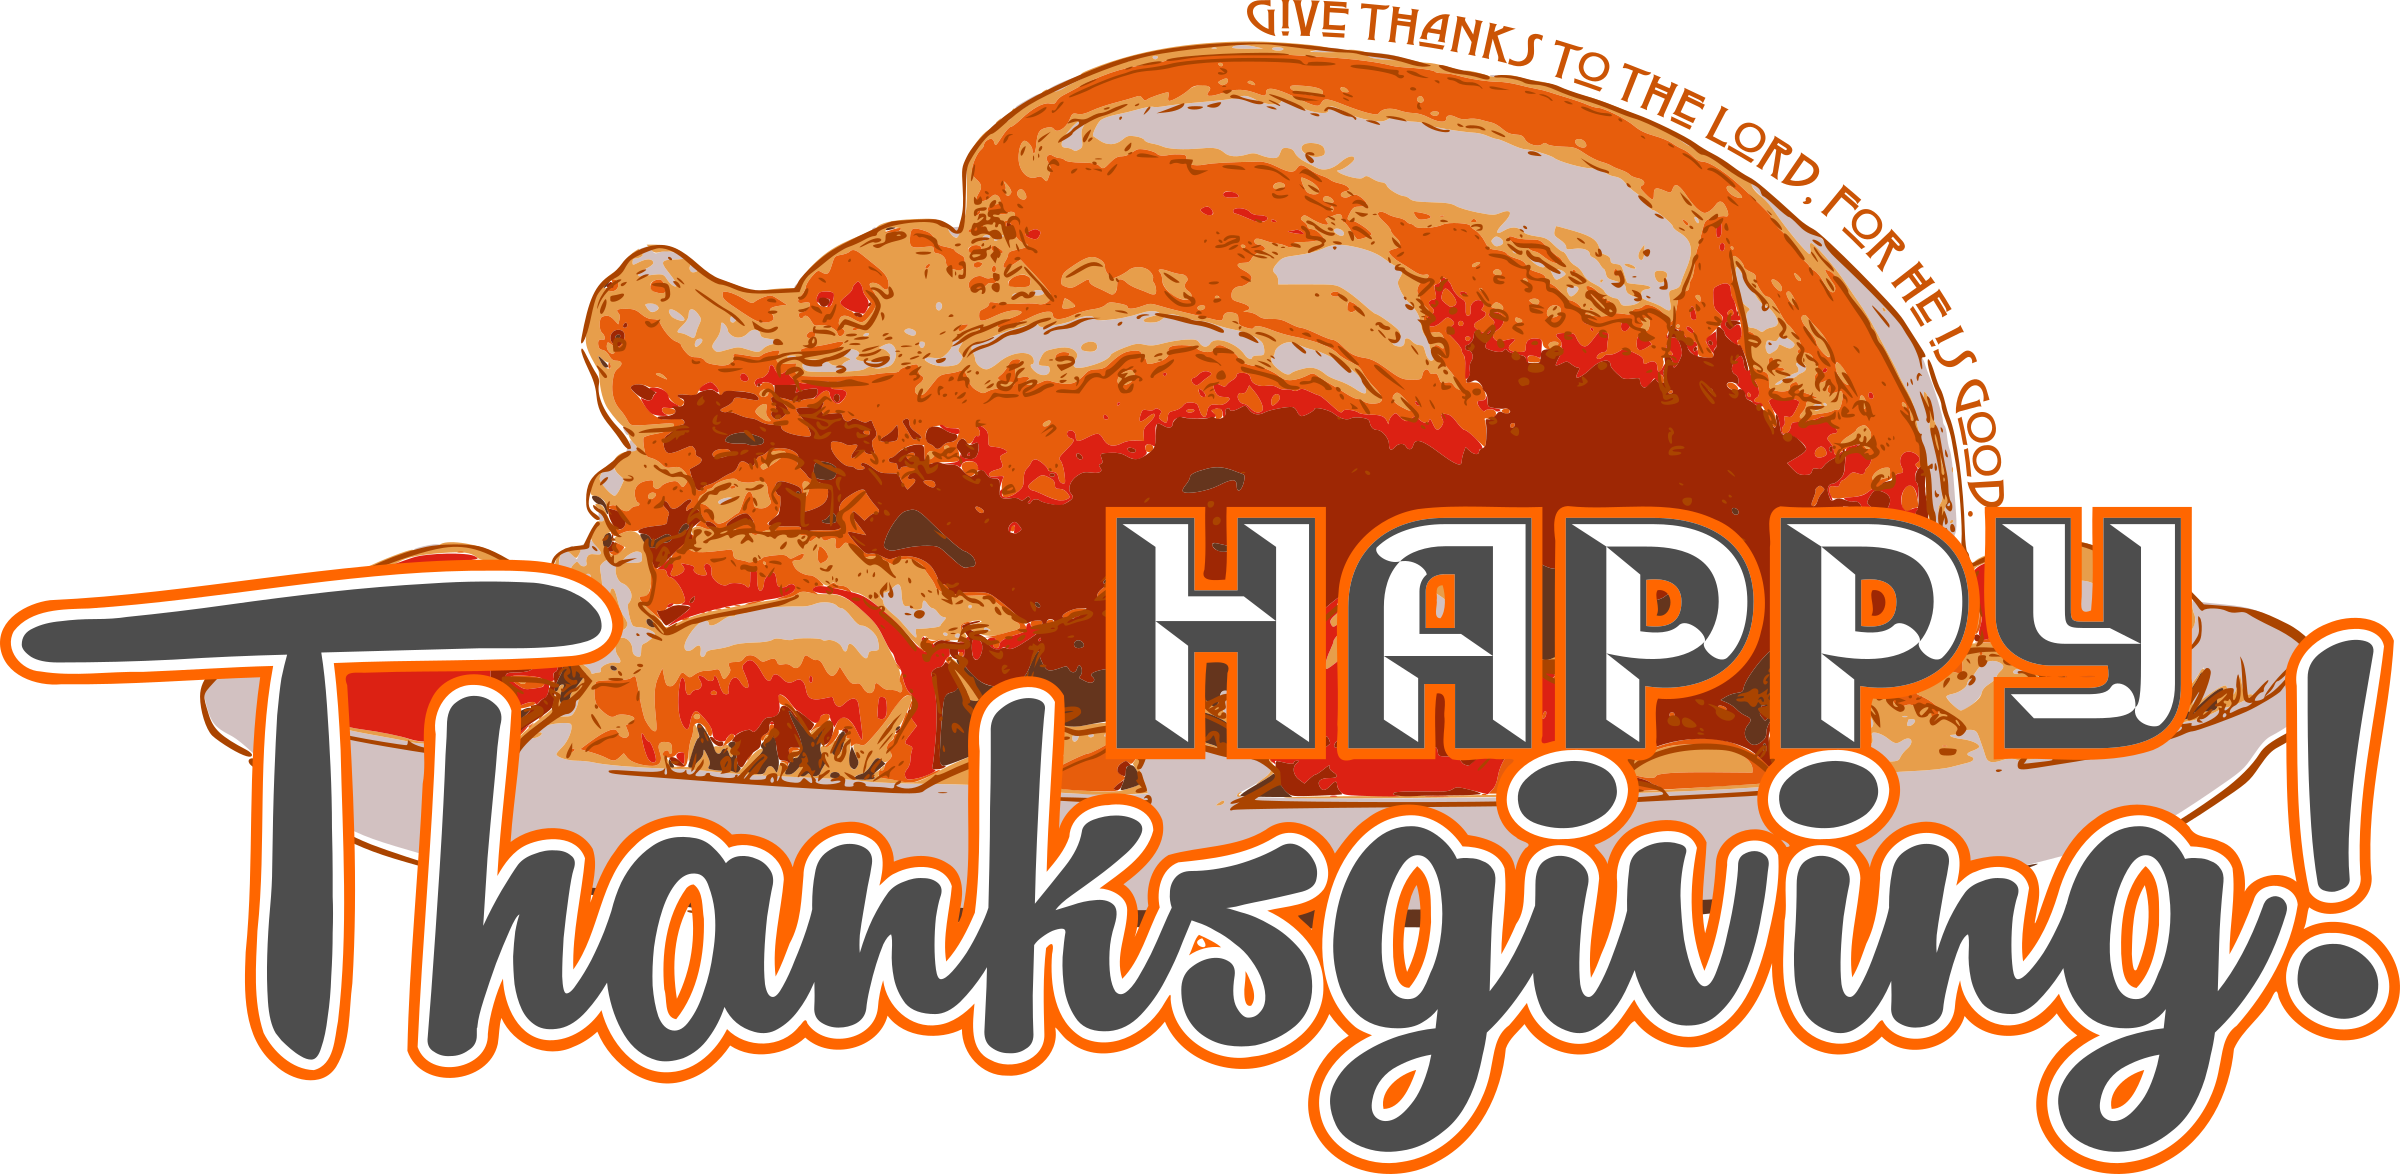 Clipart happy big image. Thanksgiving png images